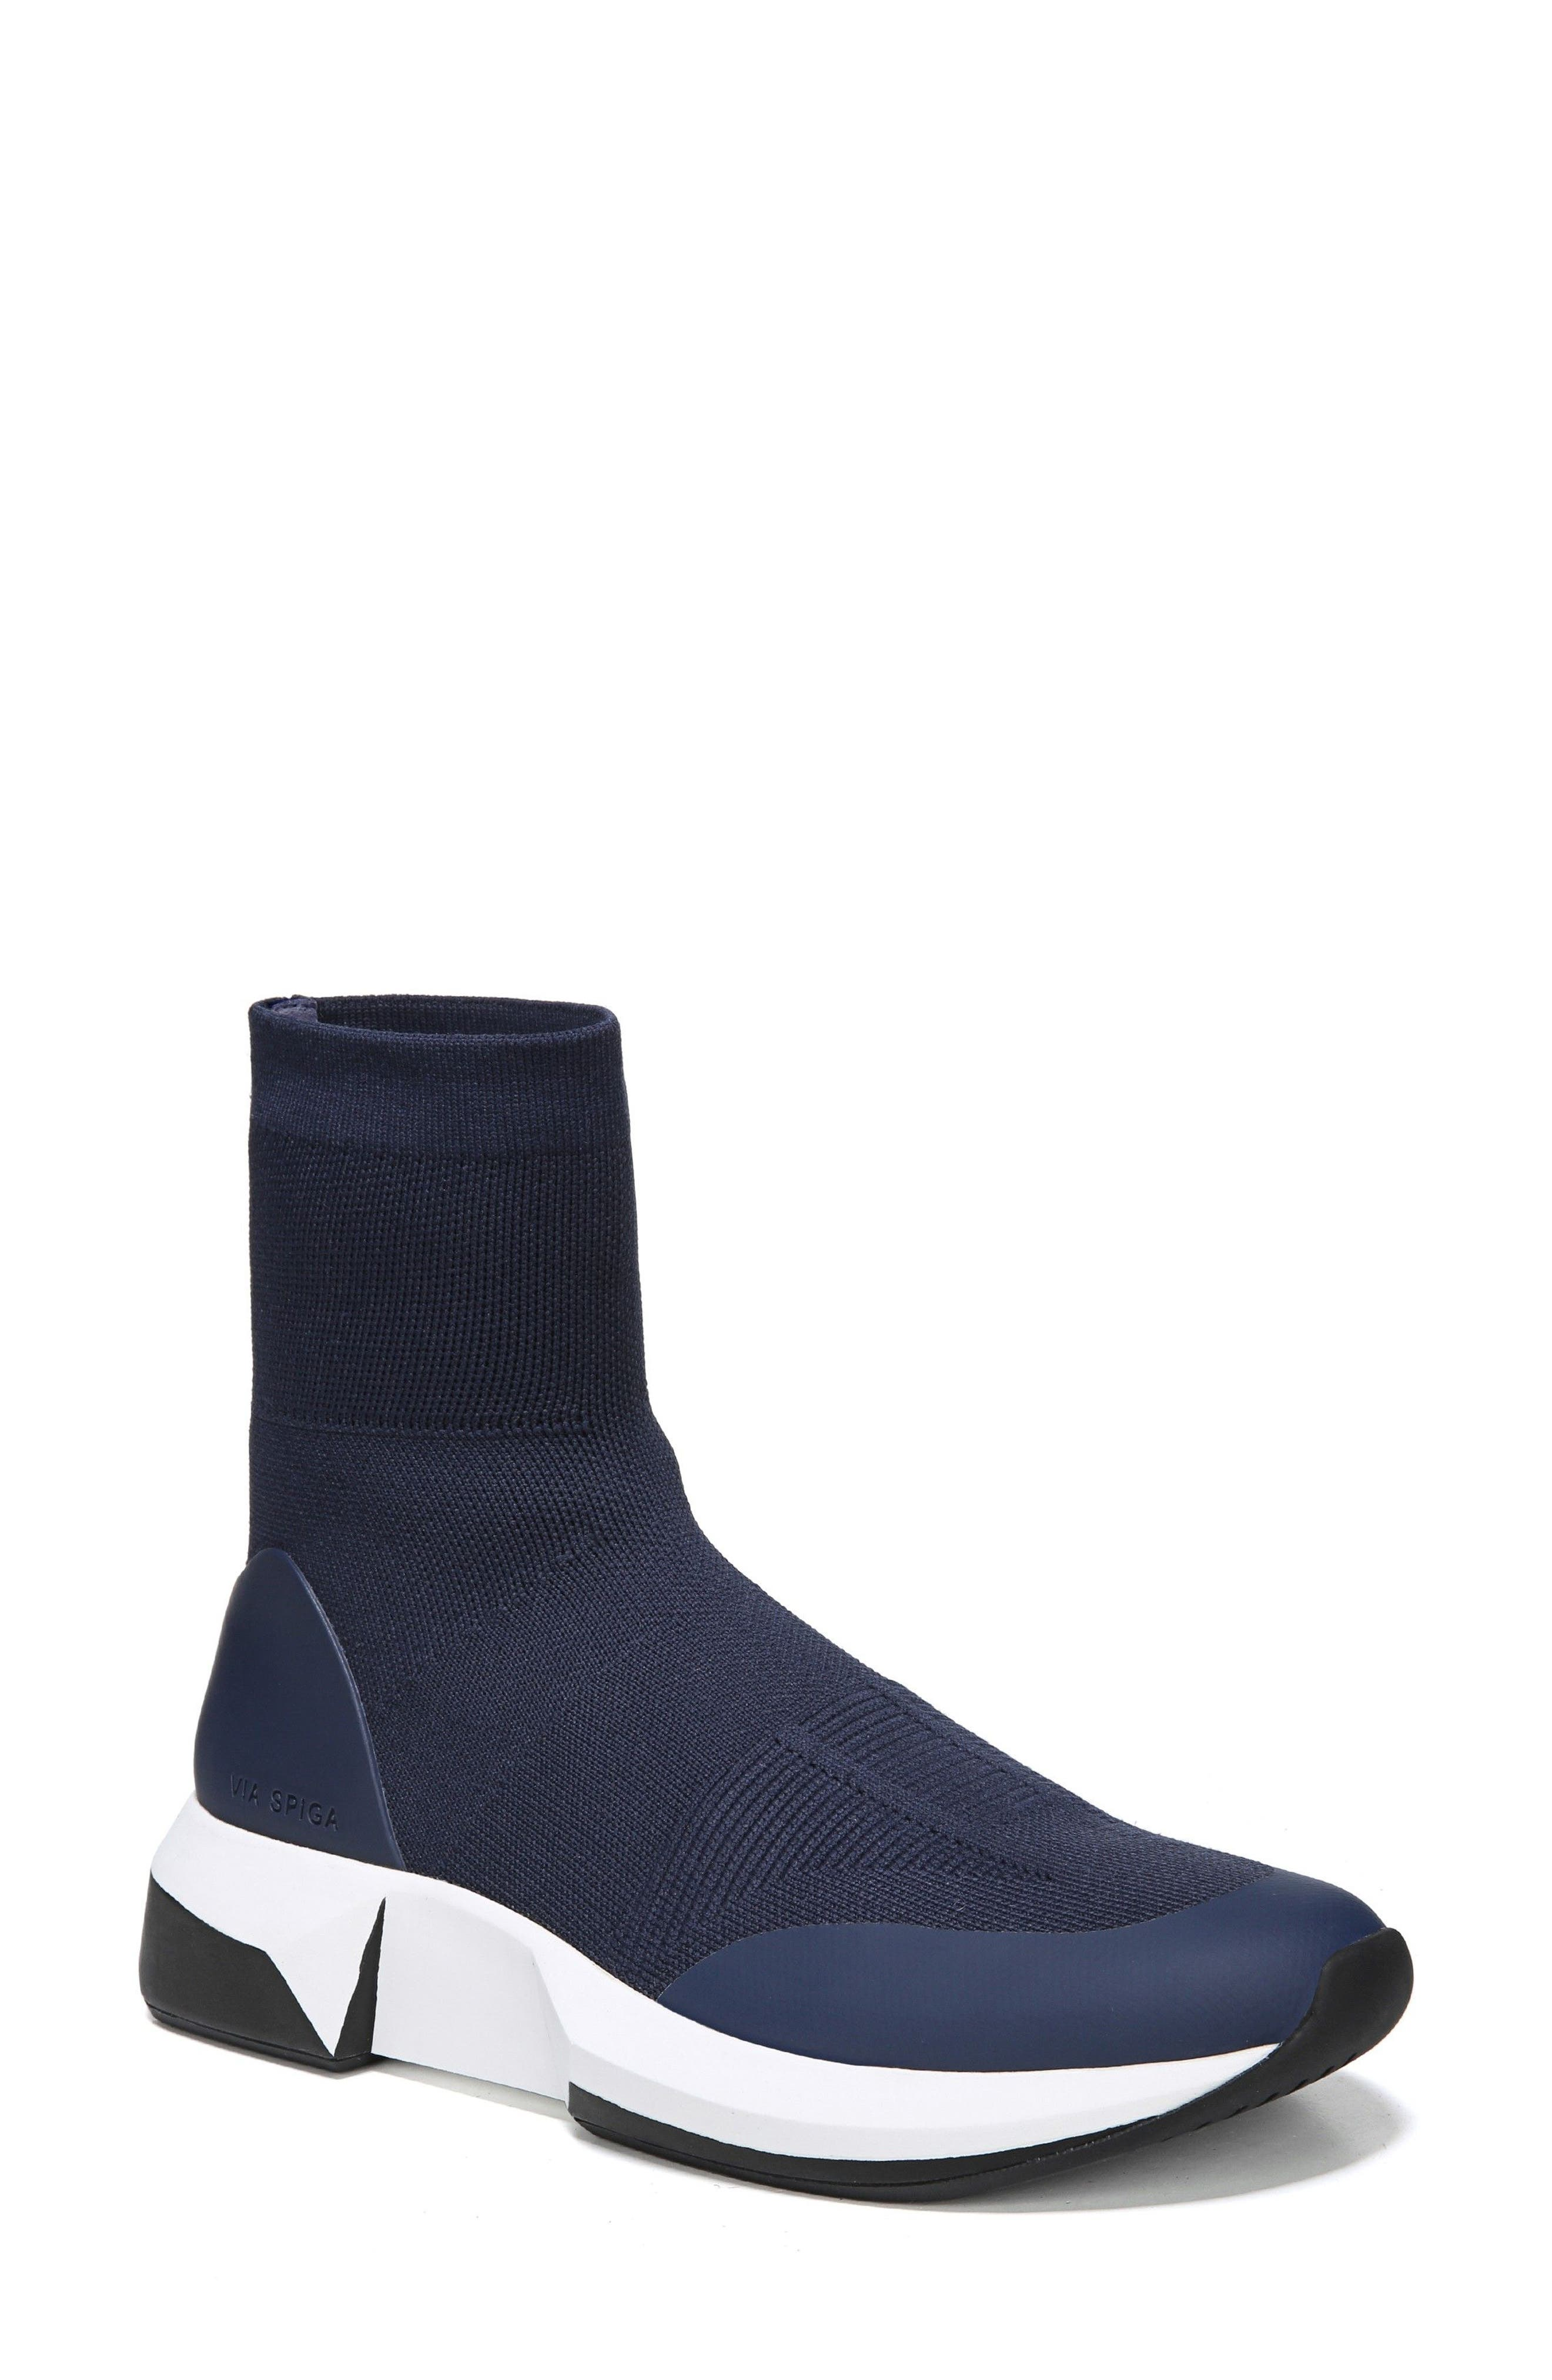 Verion High Top Sock Sneaker,                         Main,                         color, Sapphire Fabric